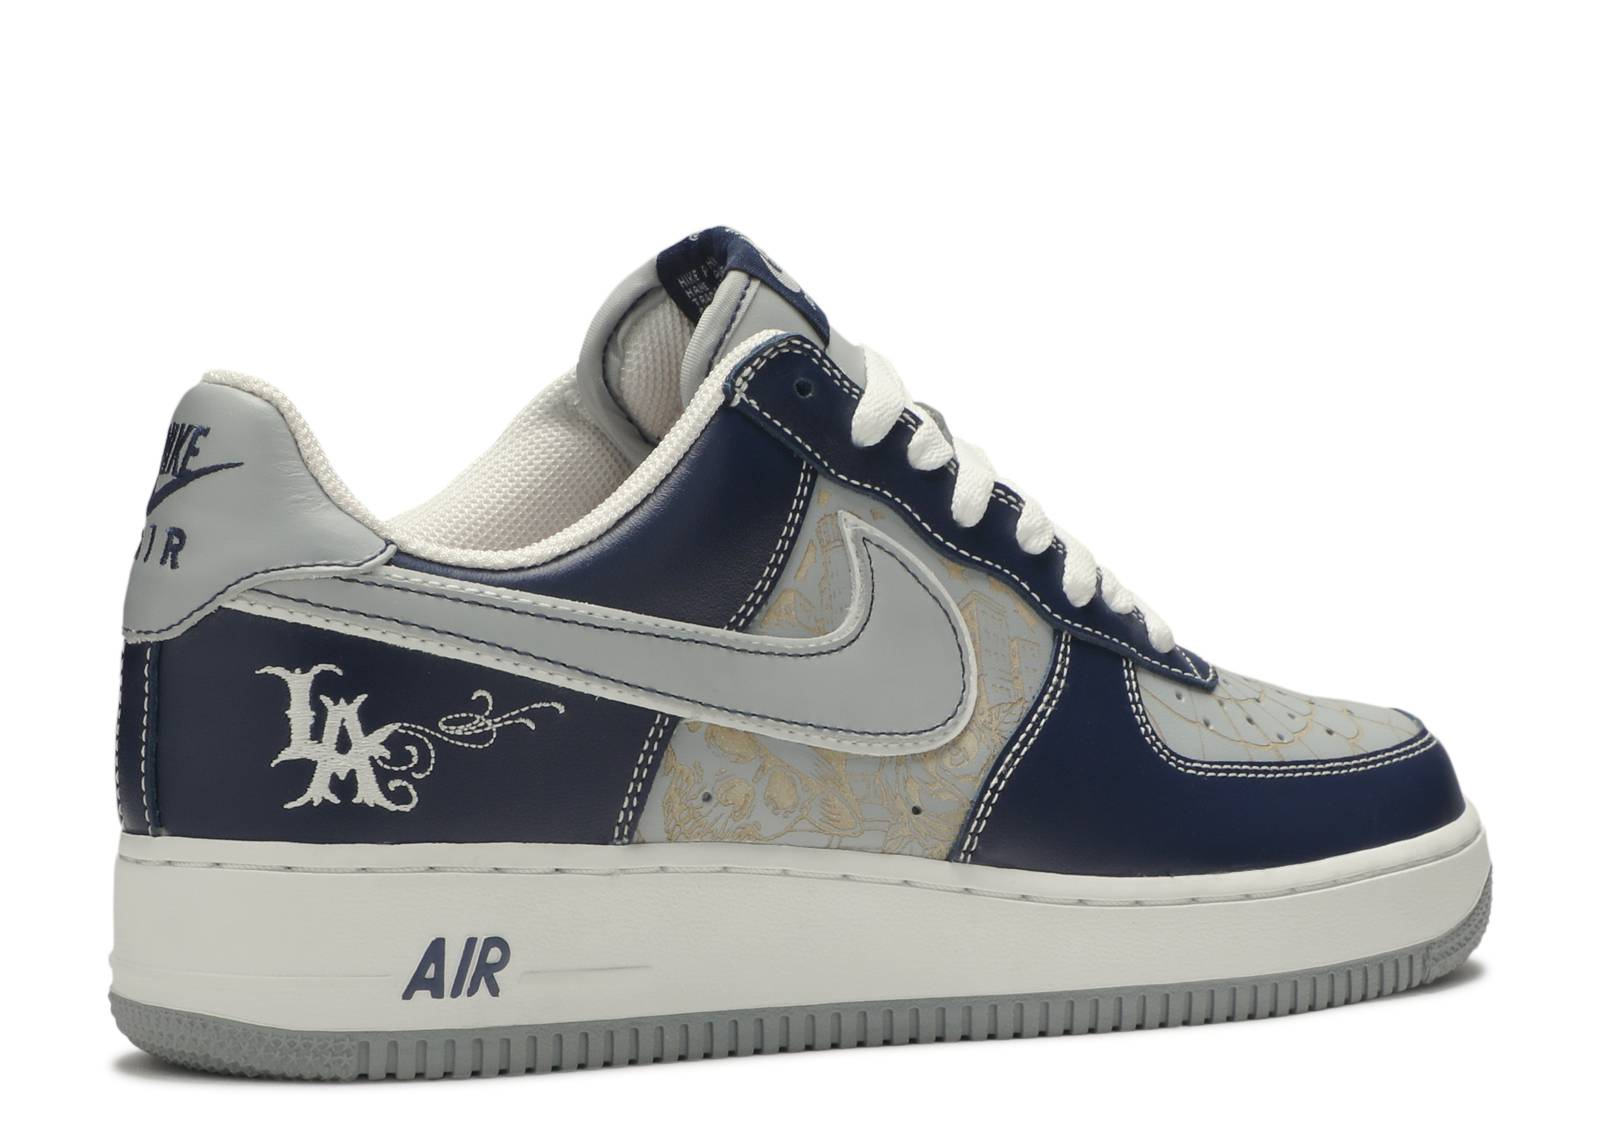 Nike Air Force 1 Low WBF Collection